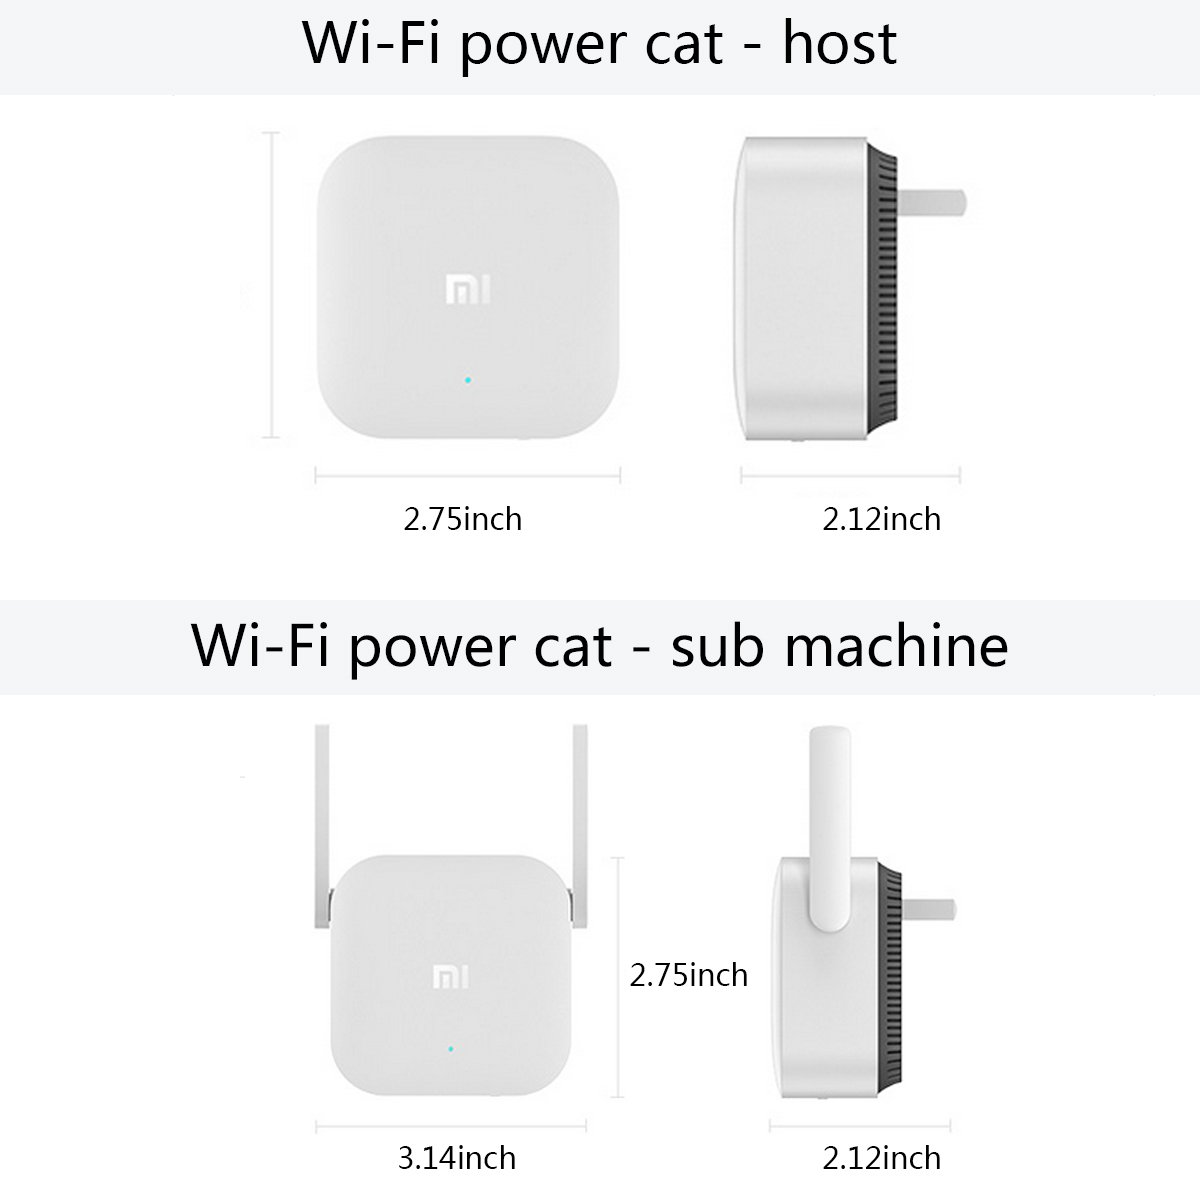 Amazon.com: Xiaomi Wi-Fi Repeater Electric Power Cat 2.4G Wireless Range Extender Router Access Point 300MPS Signal Amplifier (White): Computers & ...